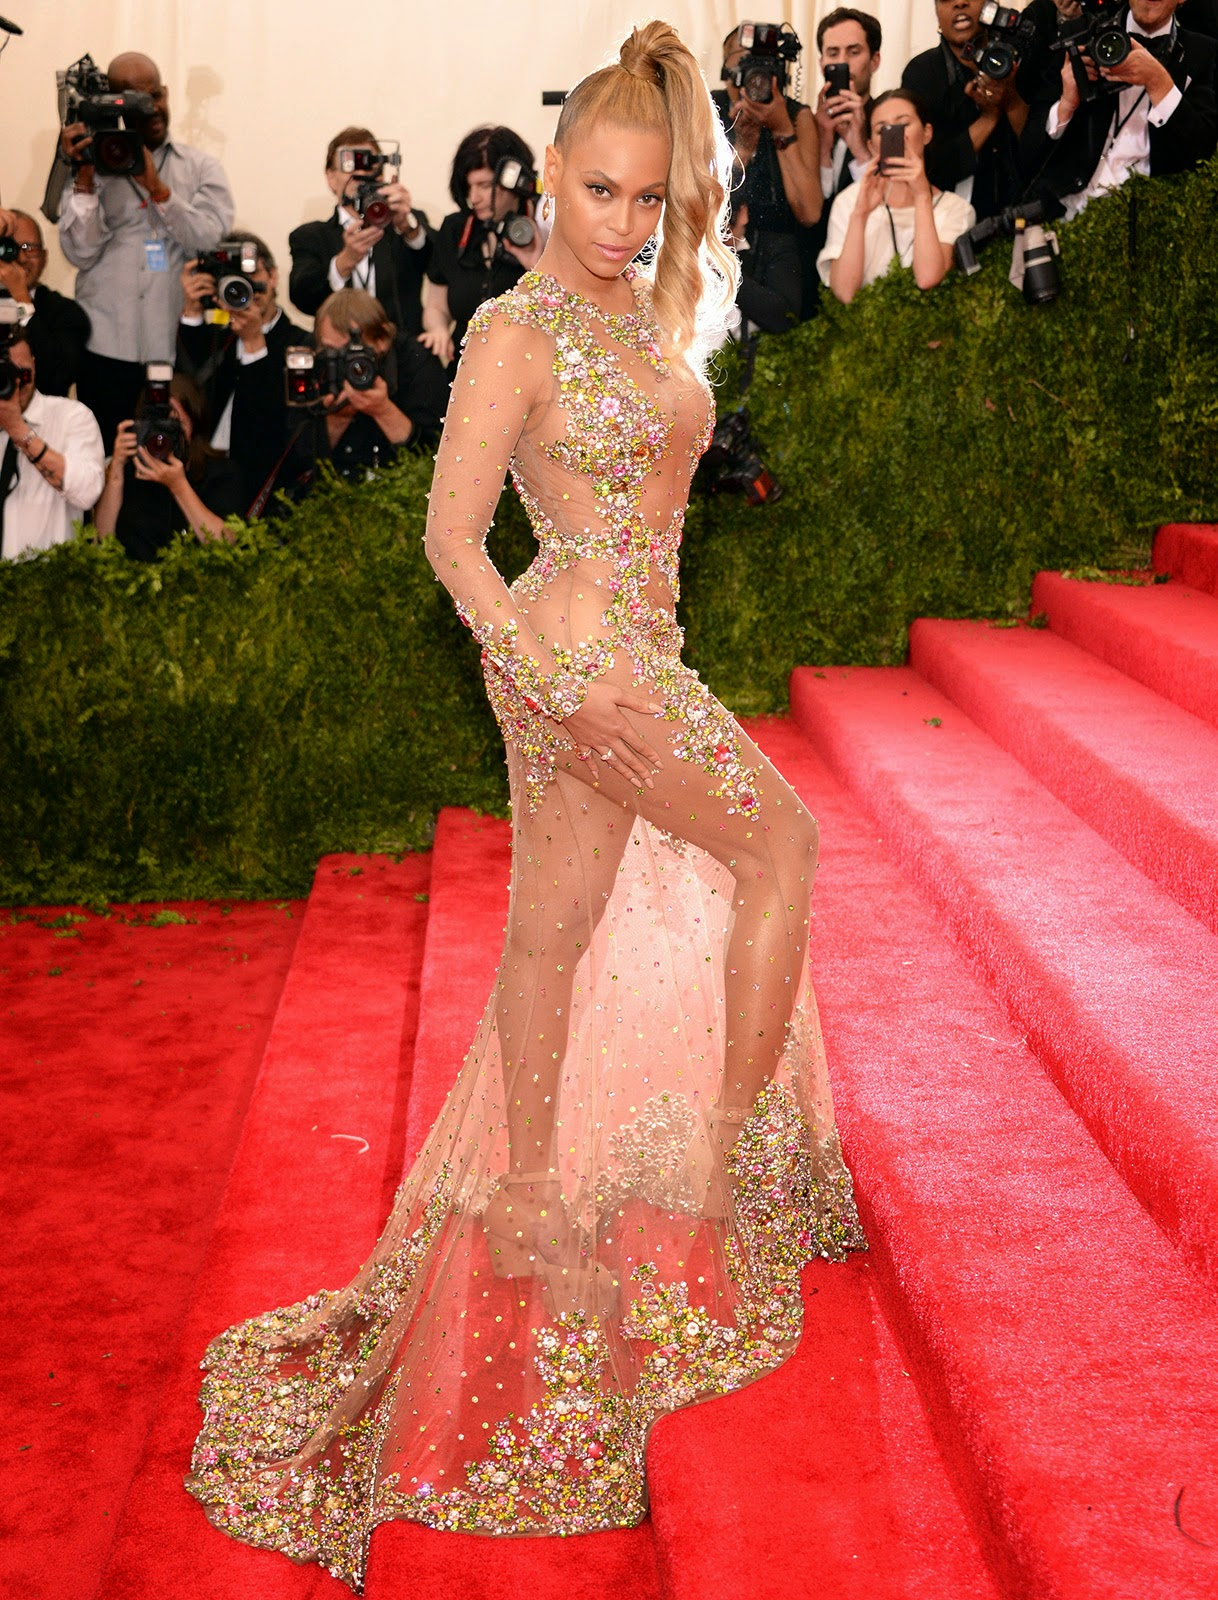 Met Gala 2015, Ball, Queen B